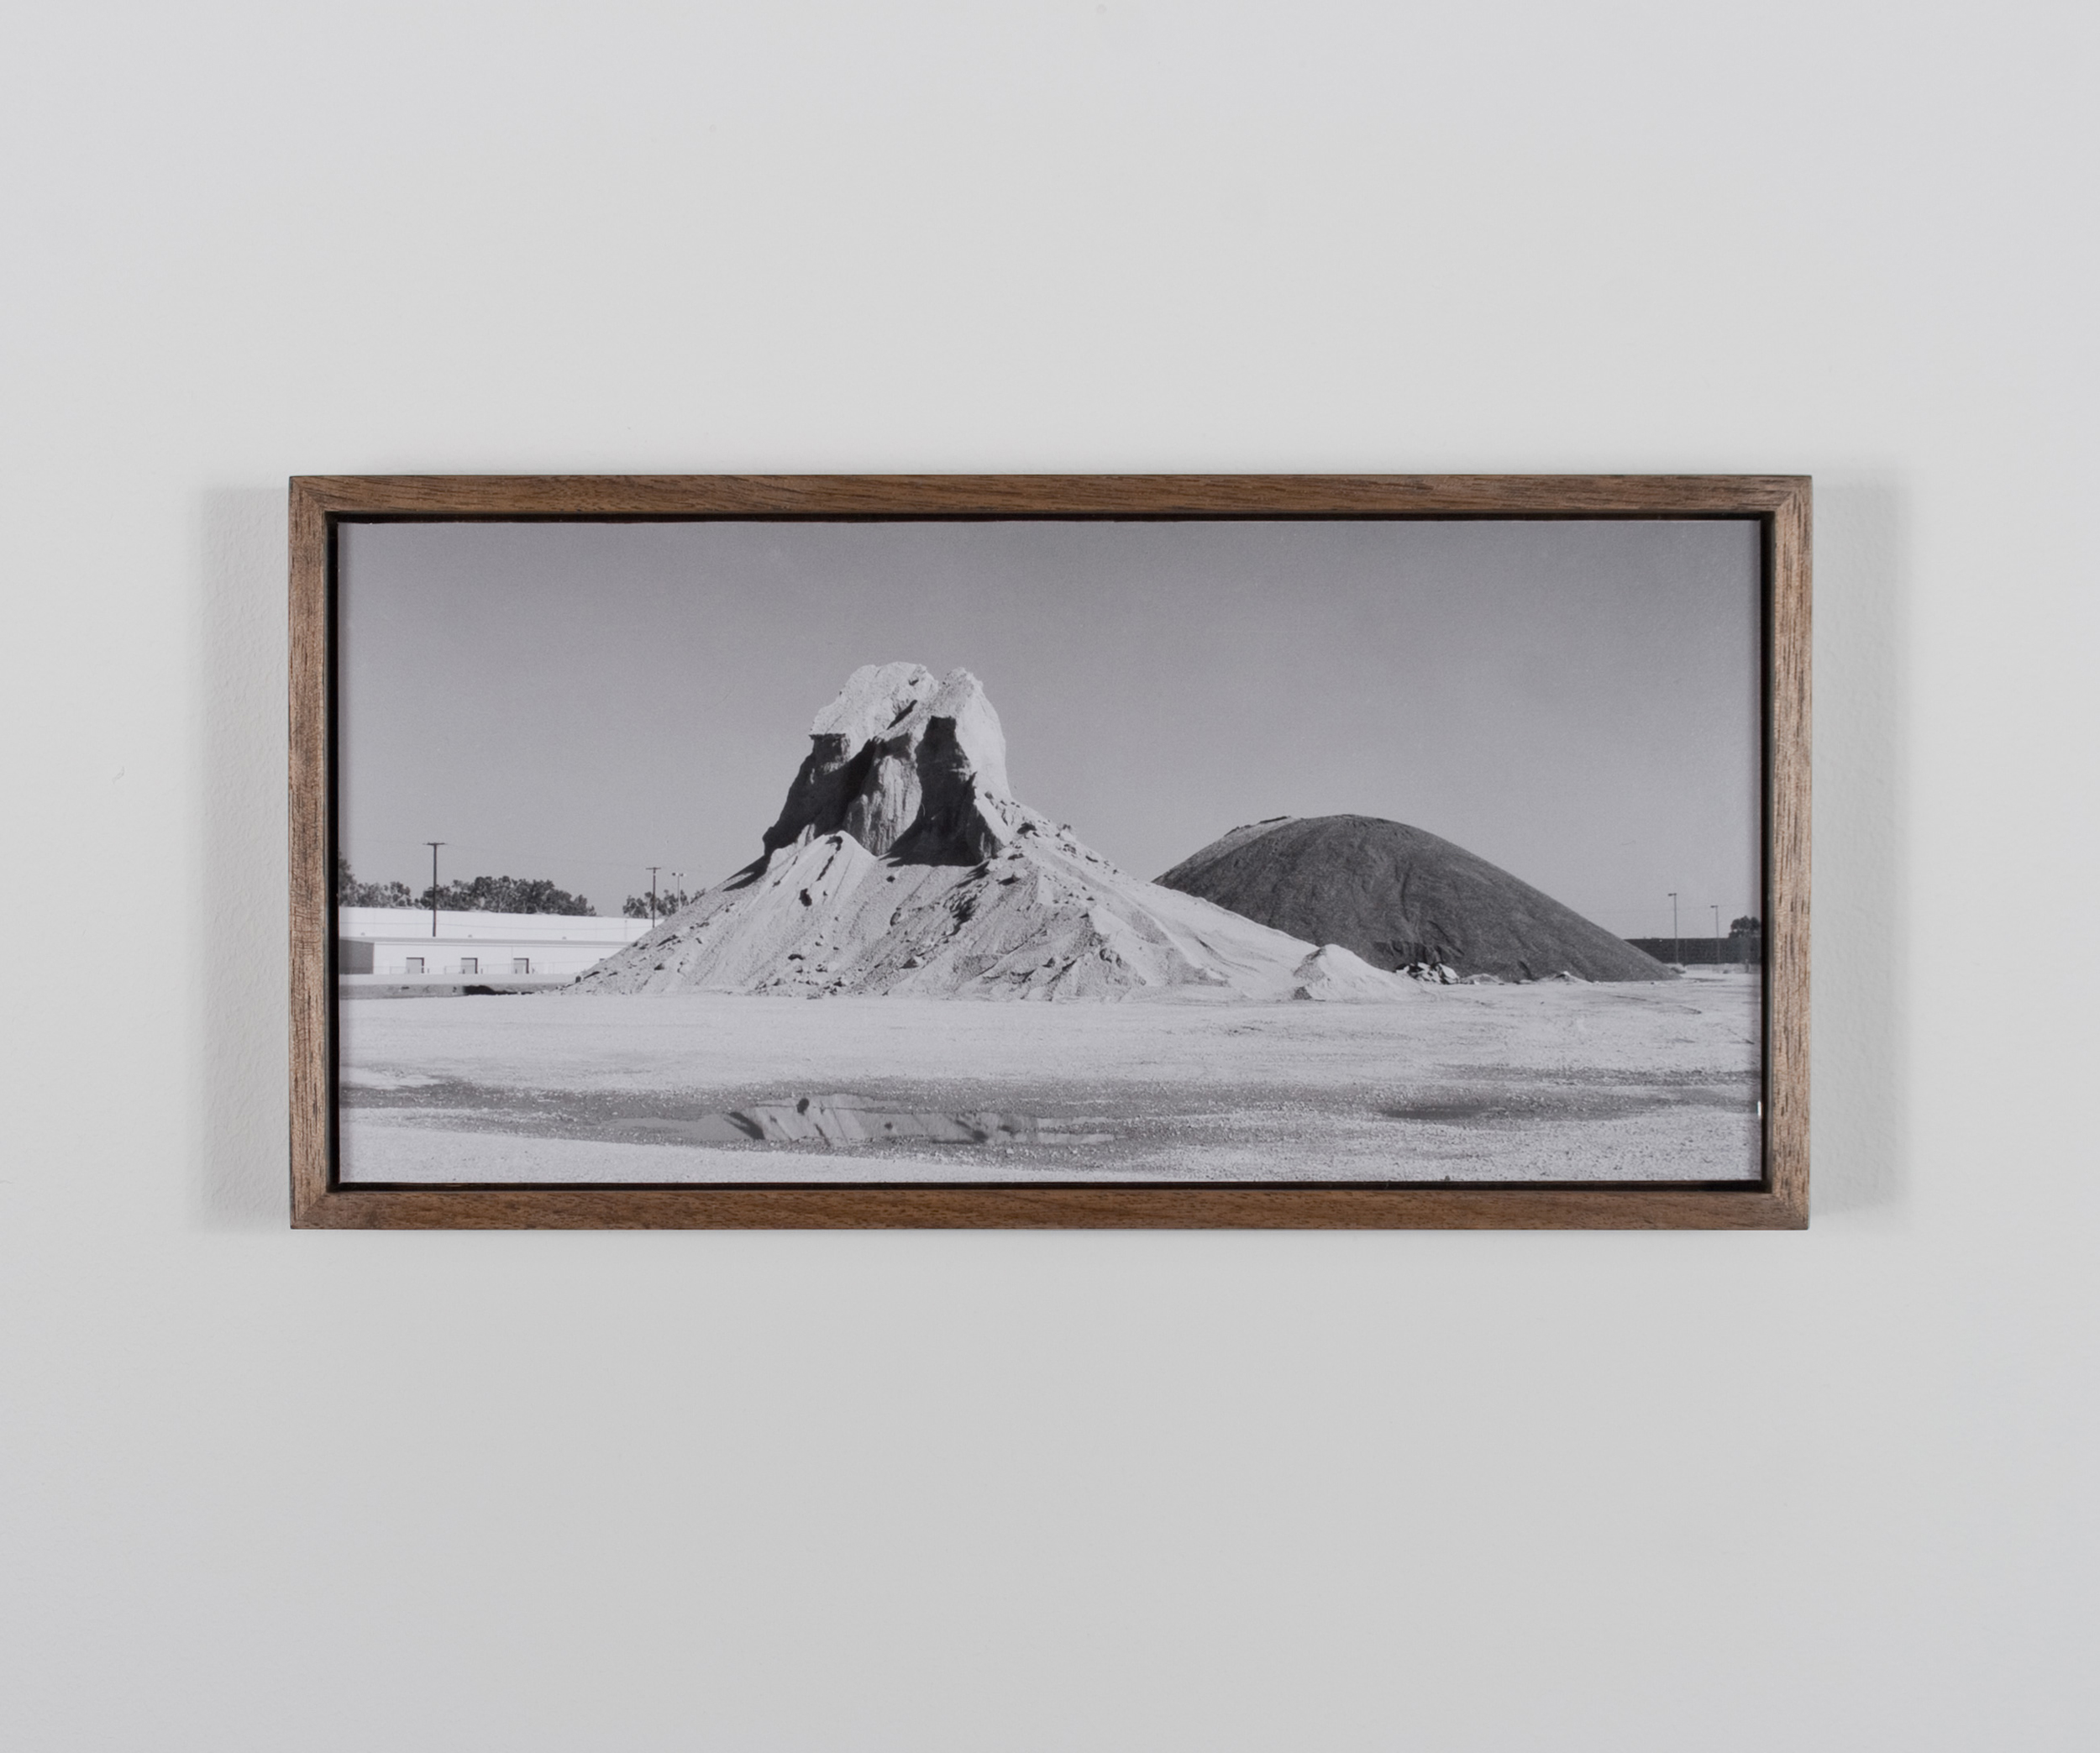 Mount Chaperone, with Mount Hellion 2009/10 Gelatin-silver print on Dibond, with walnut frame